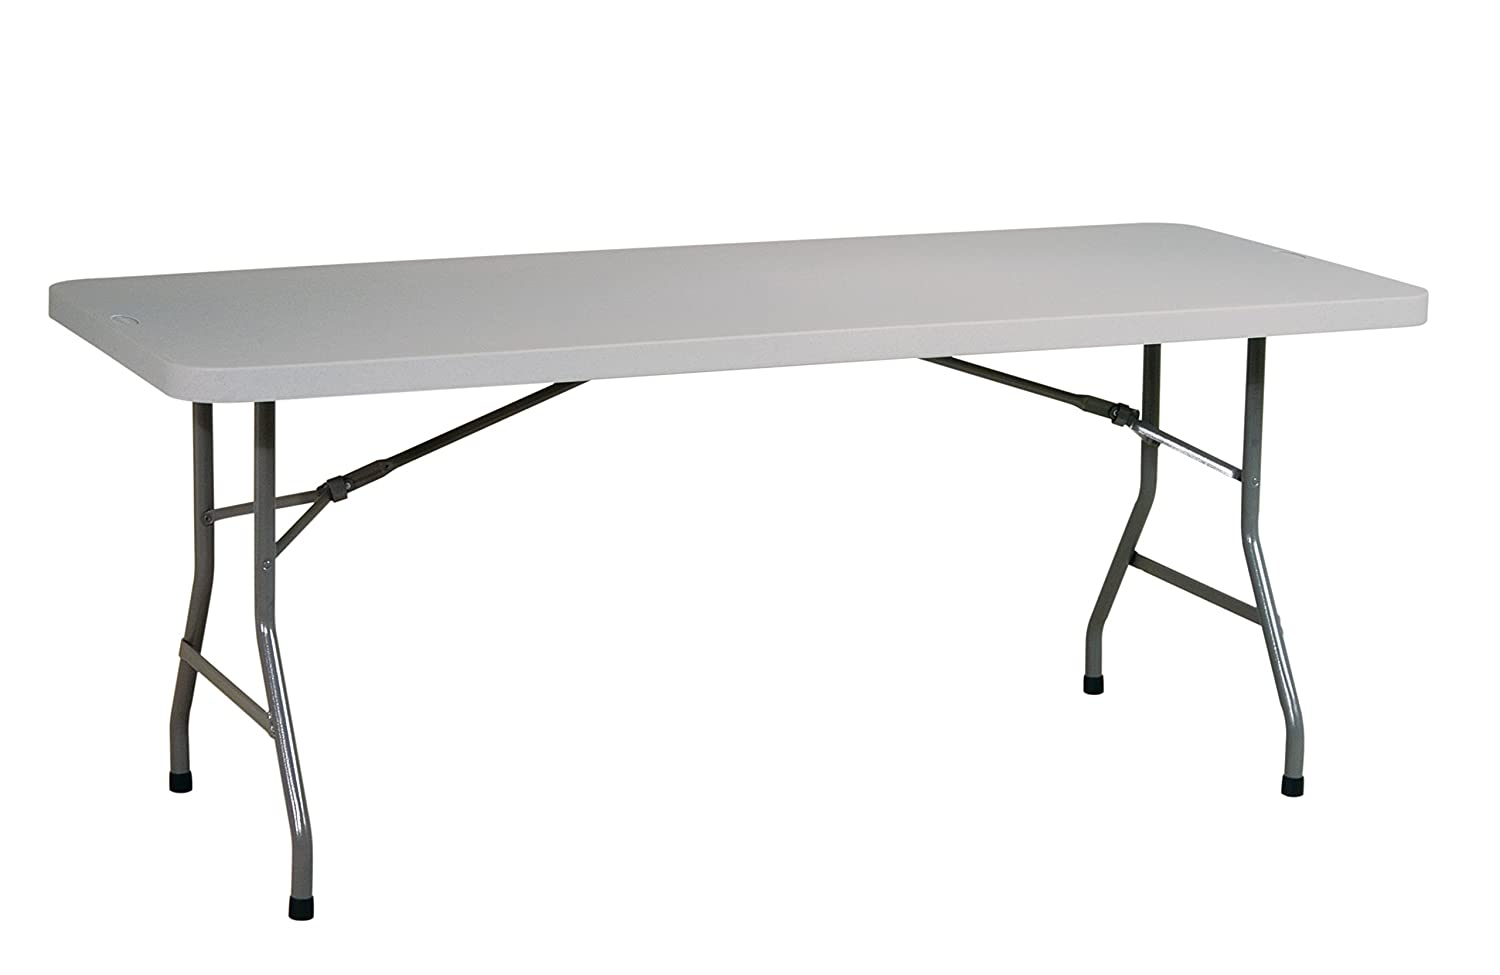 de716ca551b Amazon.com  Office Star Resin Multipurpose Rectangle Table